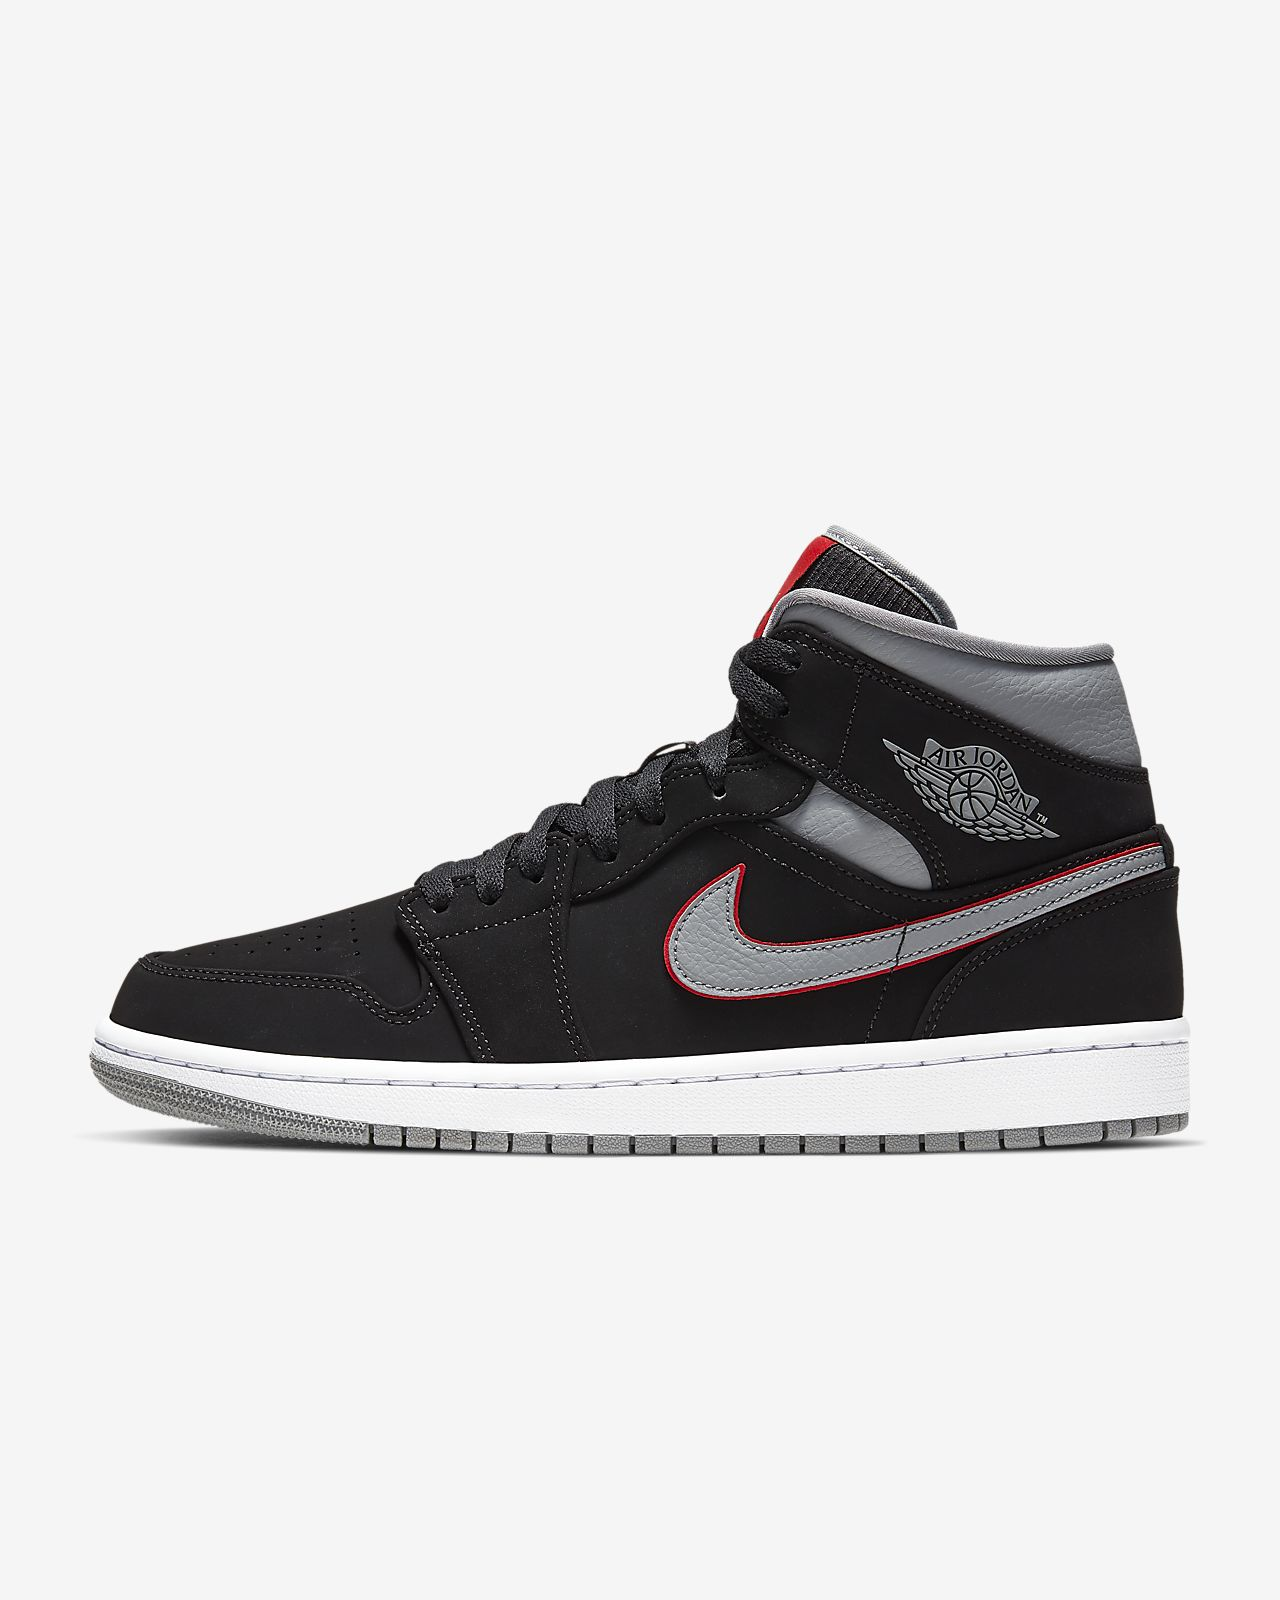 5928b72a7cd4 Air Jordan 1 Mid Men s Shoe. Nike.com AU